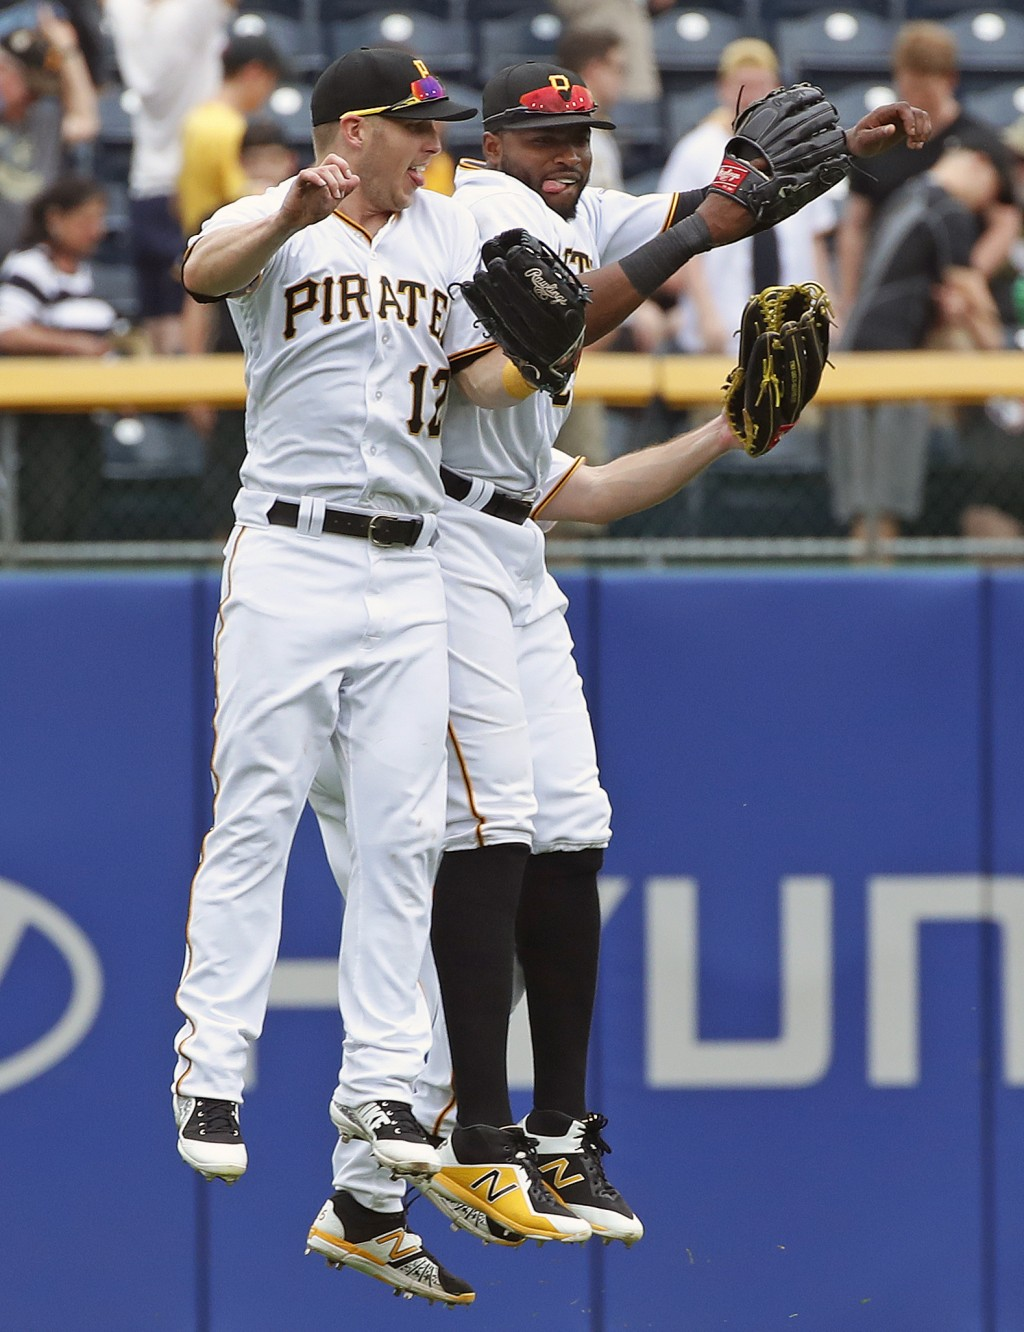 Pittsburgh Pirates outfielders Corey Dickerson (12), Gregory Polanco, right, and Adam Frazier, rear, celebrate after getting the final out of a baseba